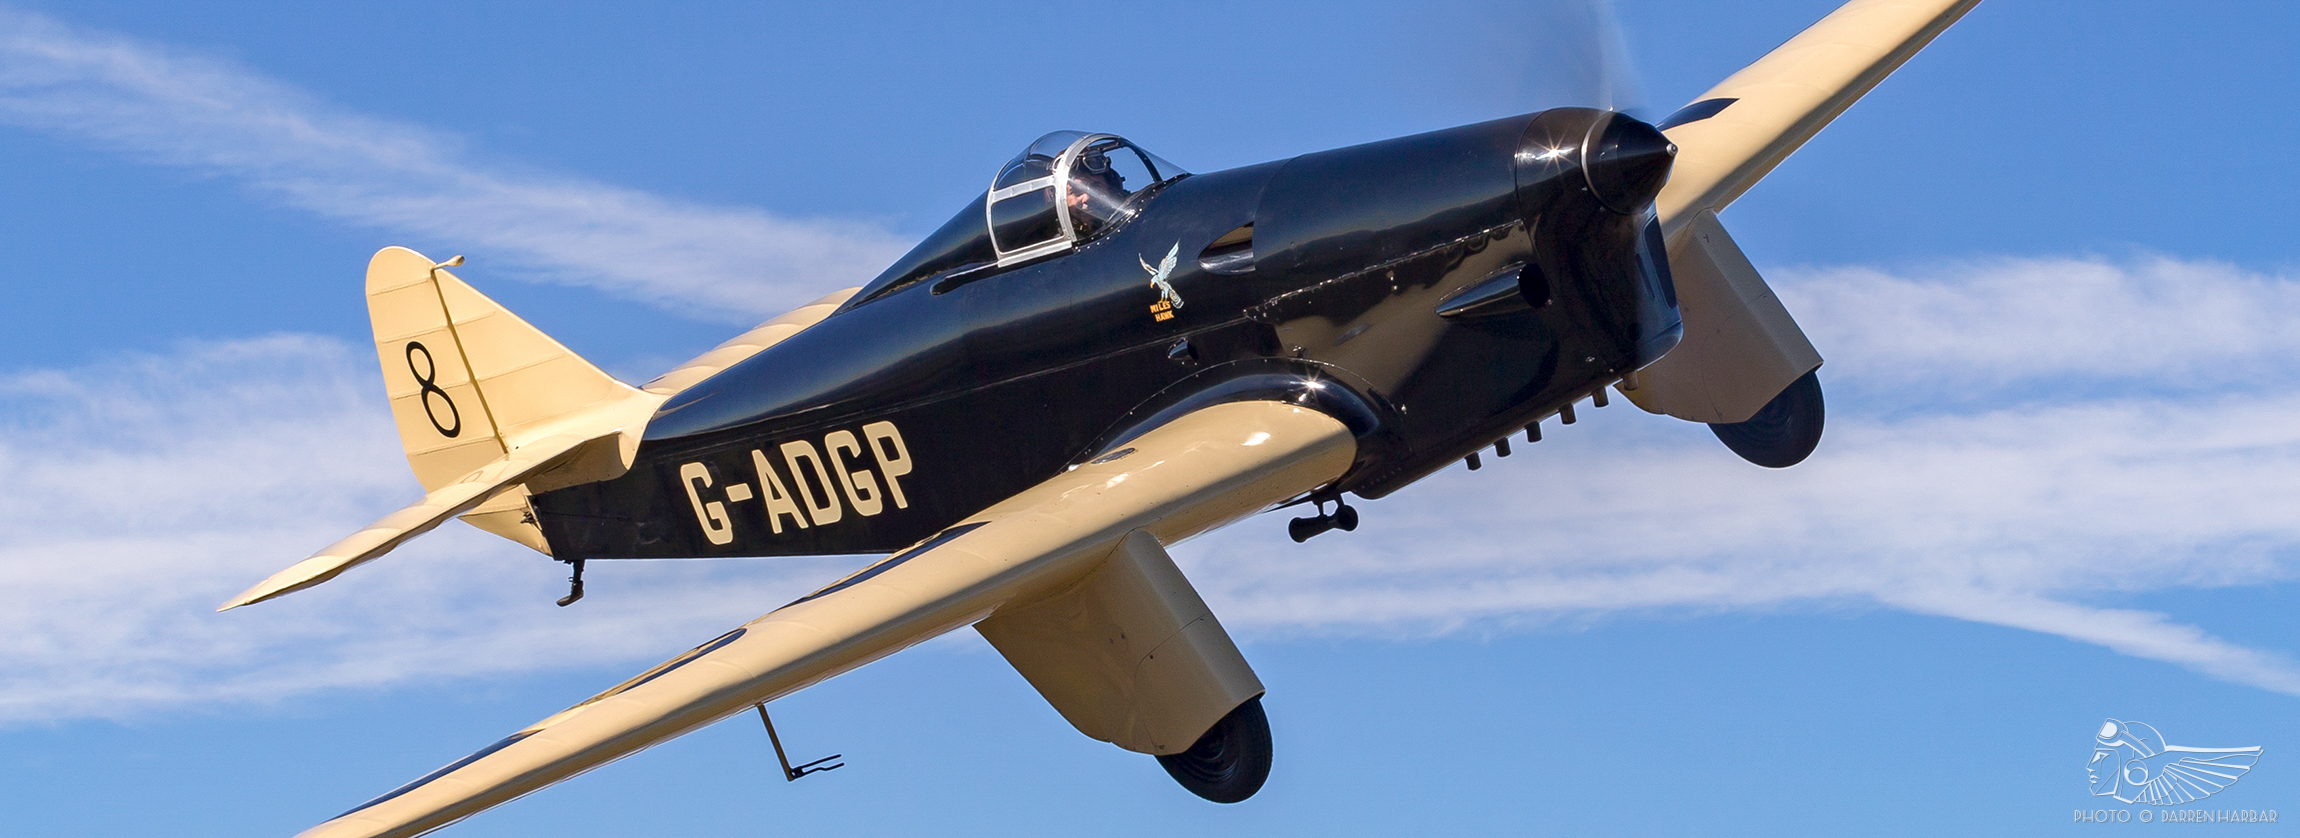 """Every inch the racer"": Flying the Miles Hawk Speed Six"